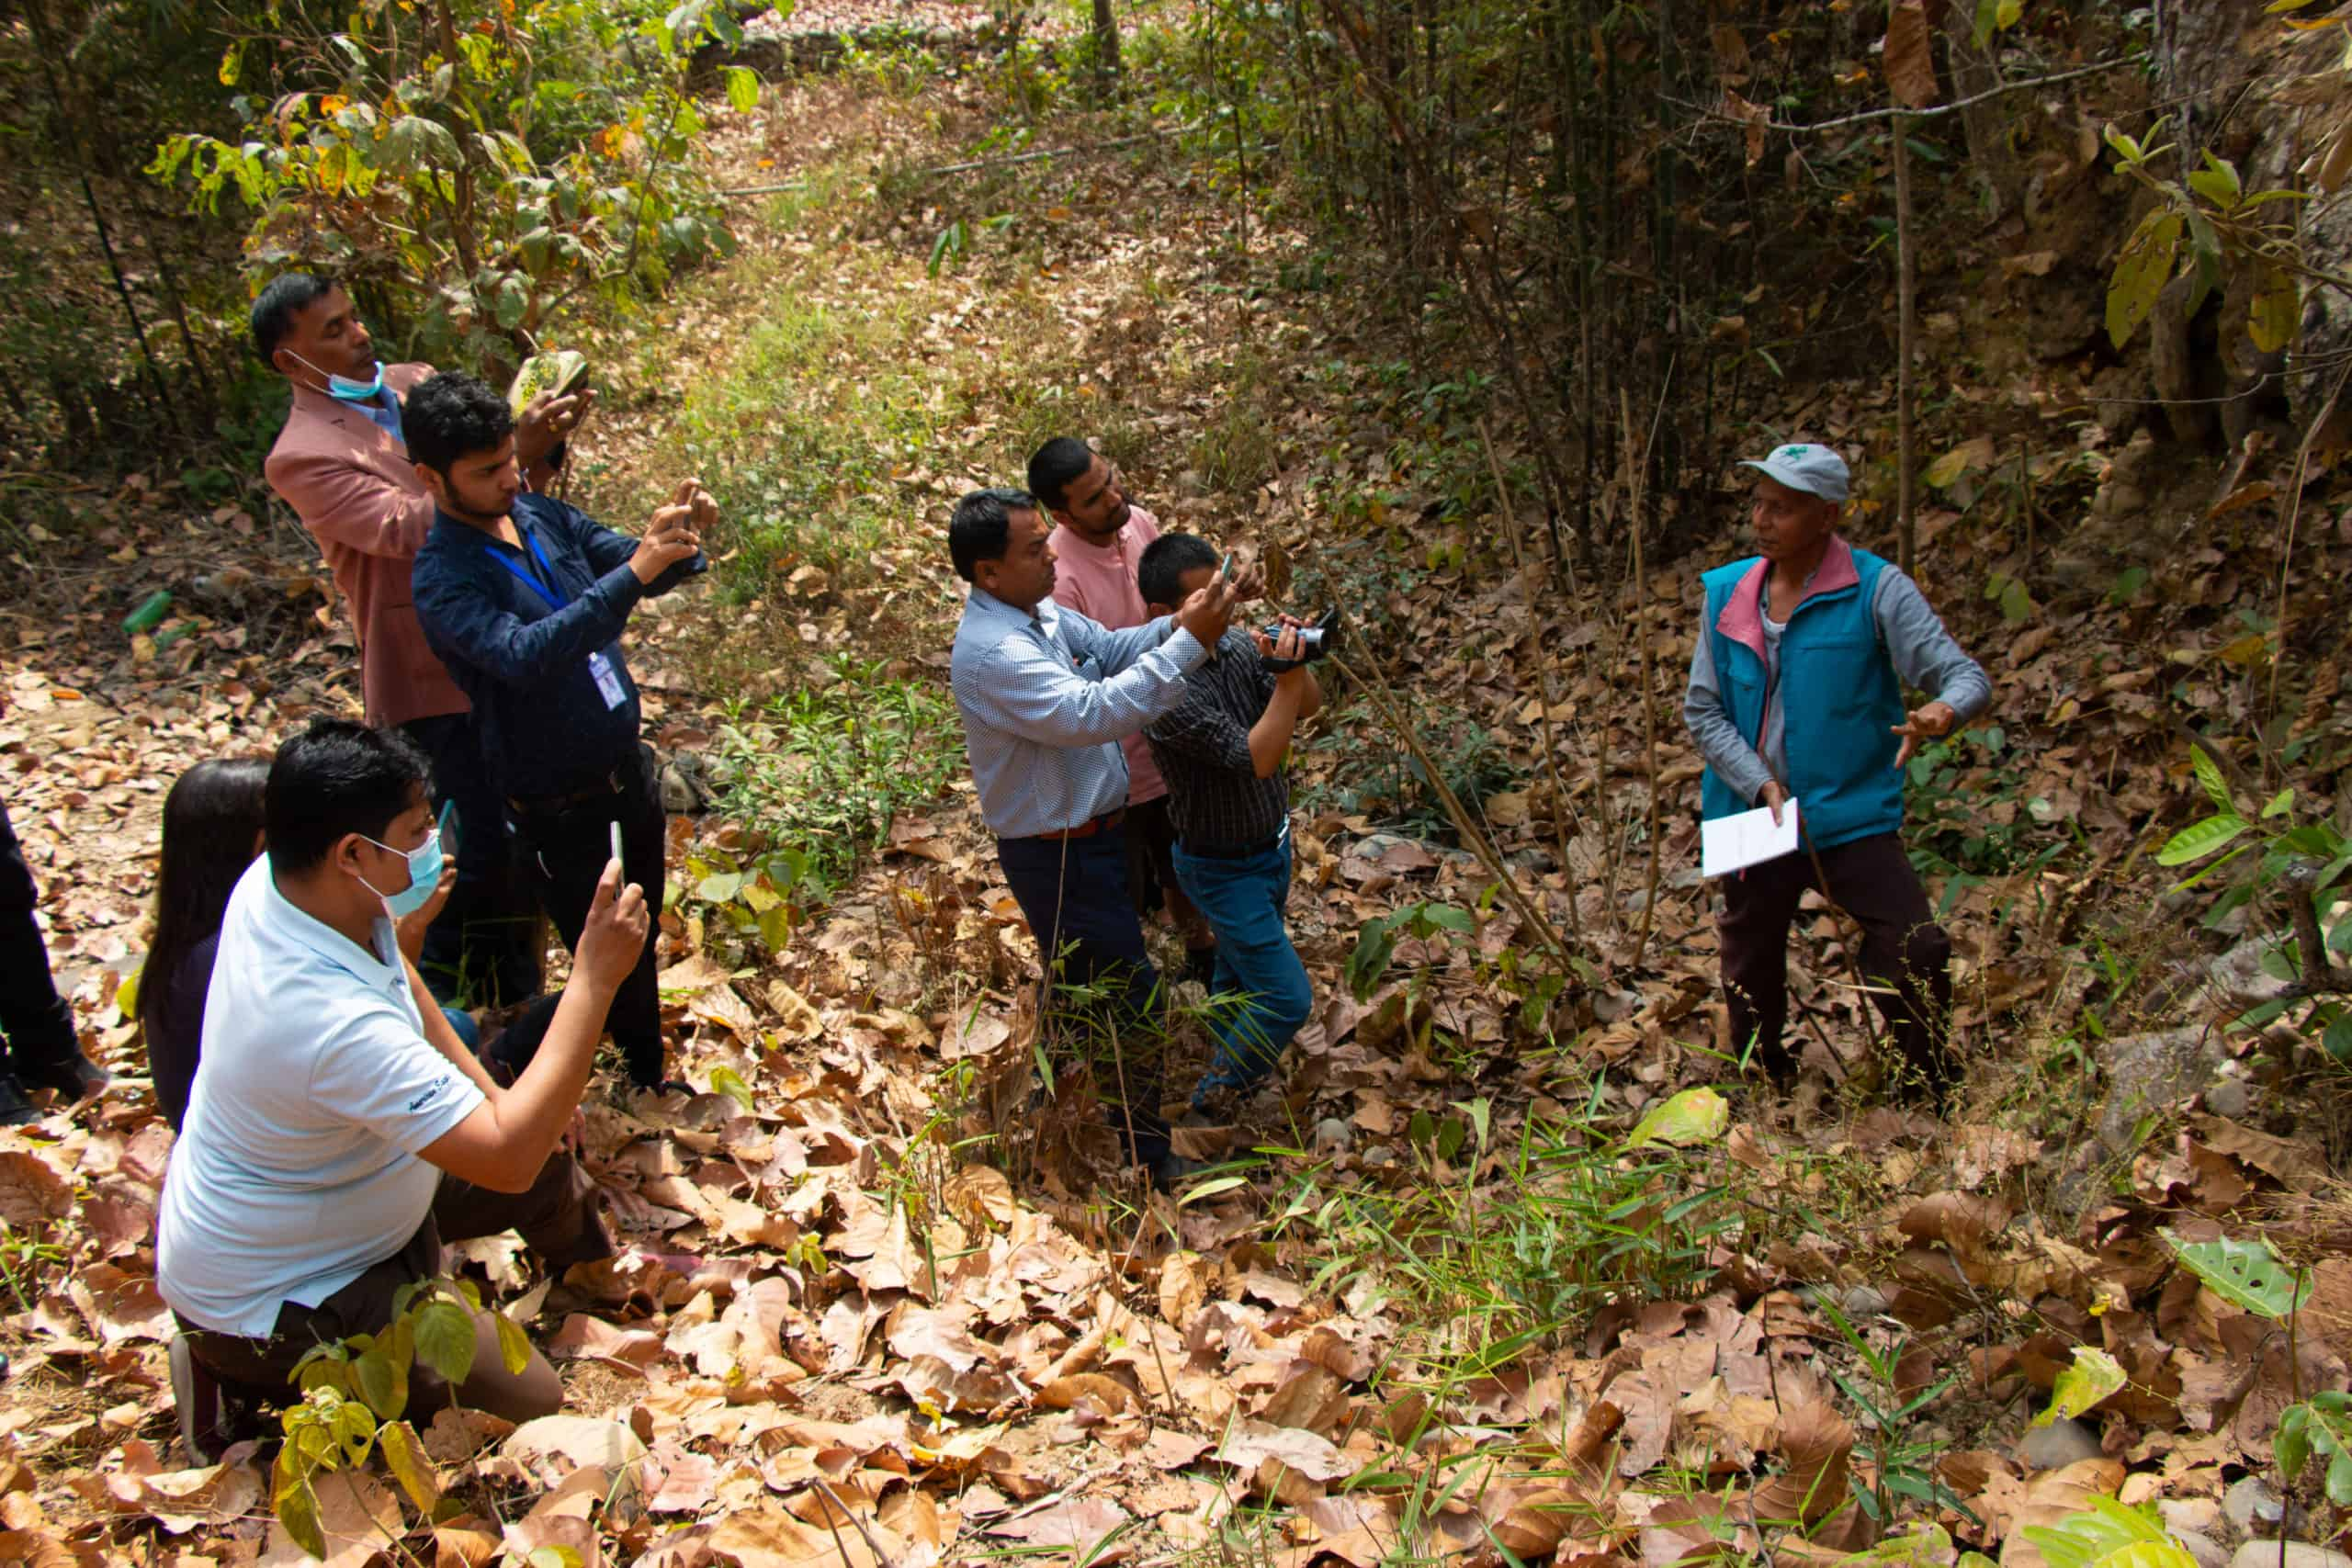 In some woods, a man speaks while a group of people point their smart phones at him.